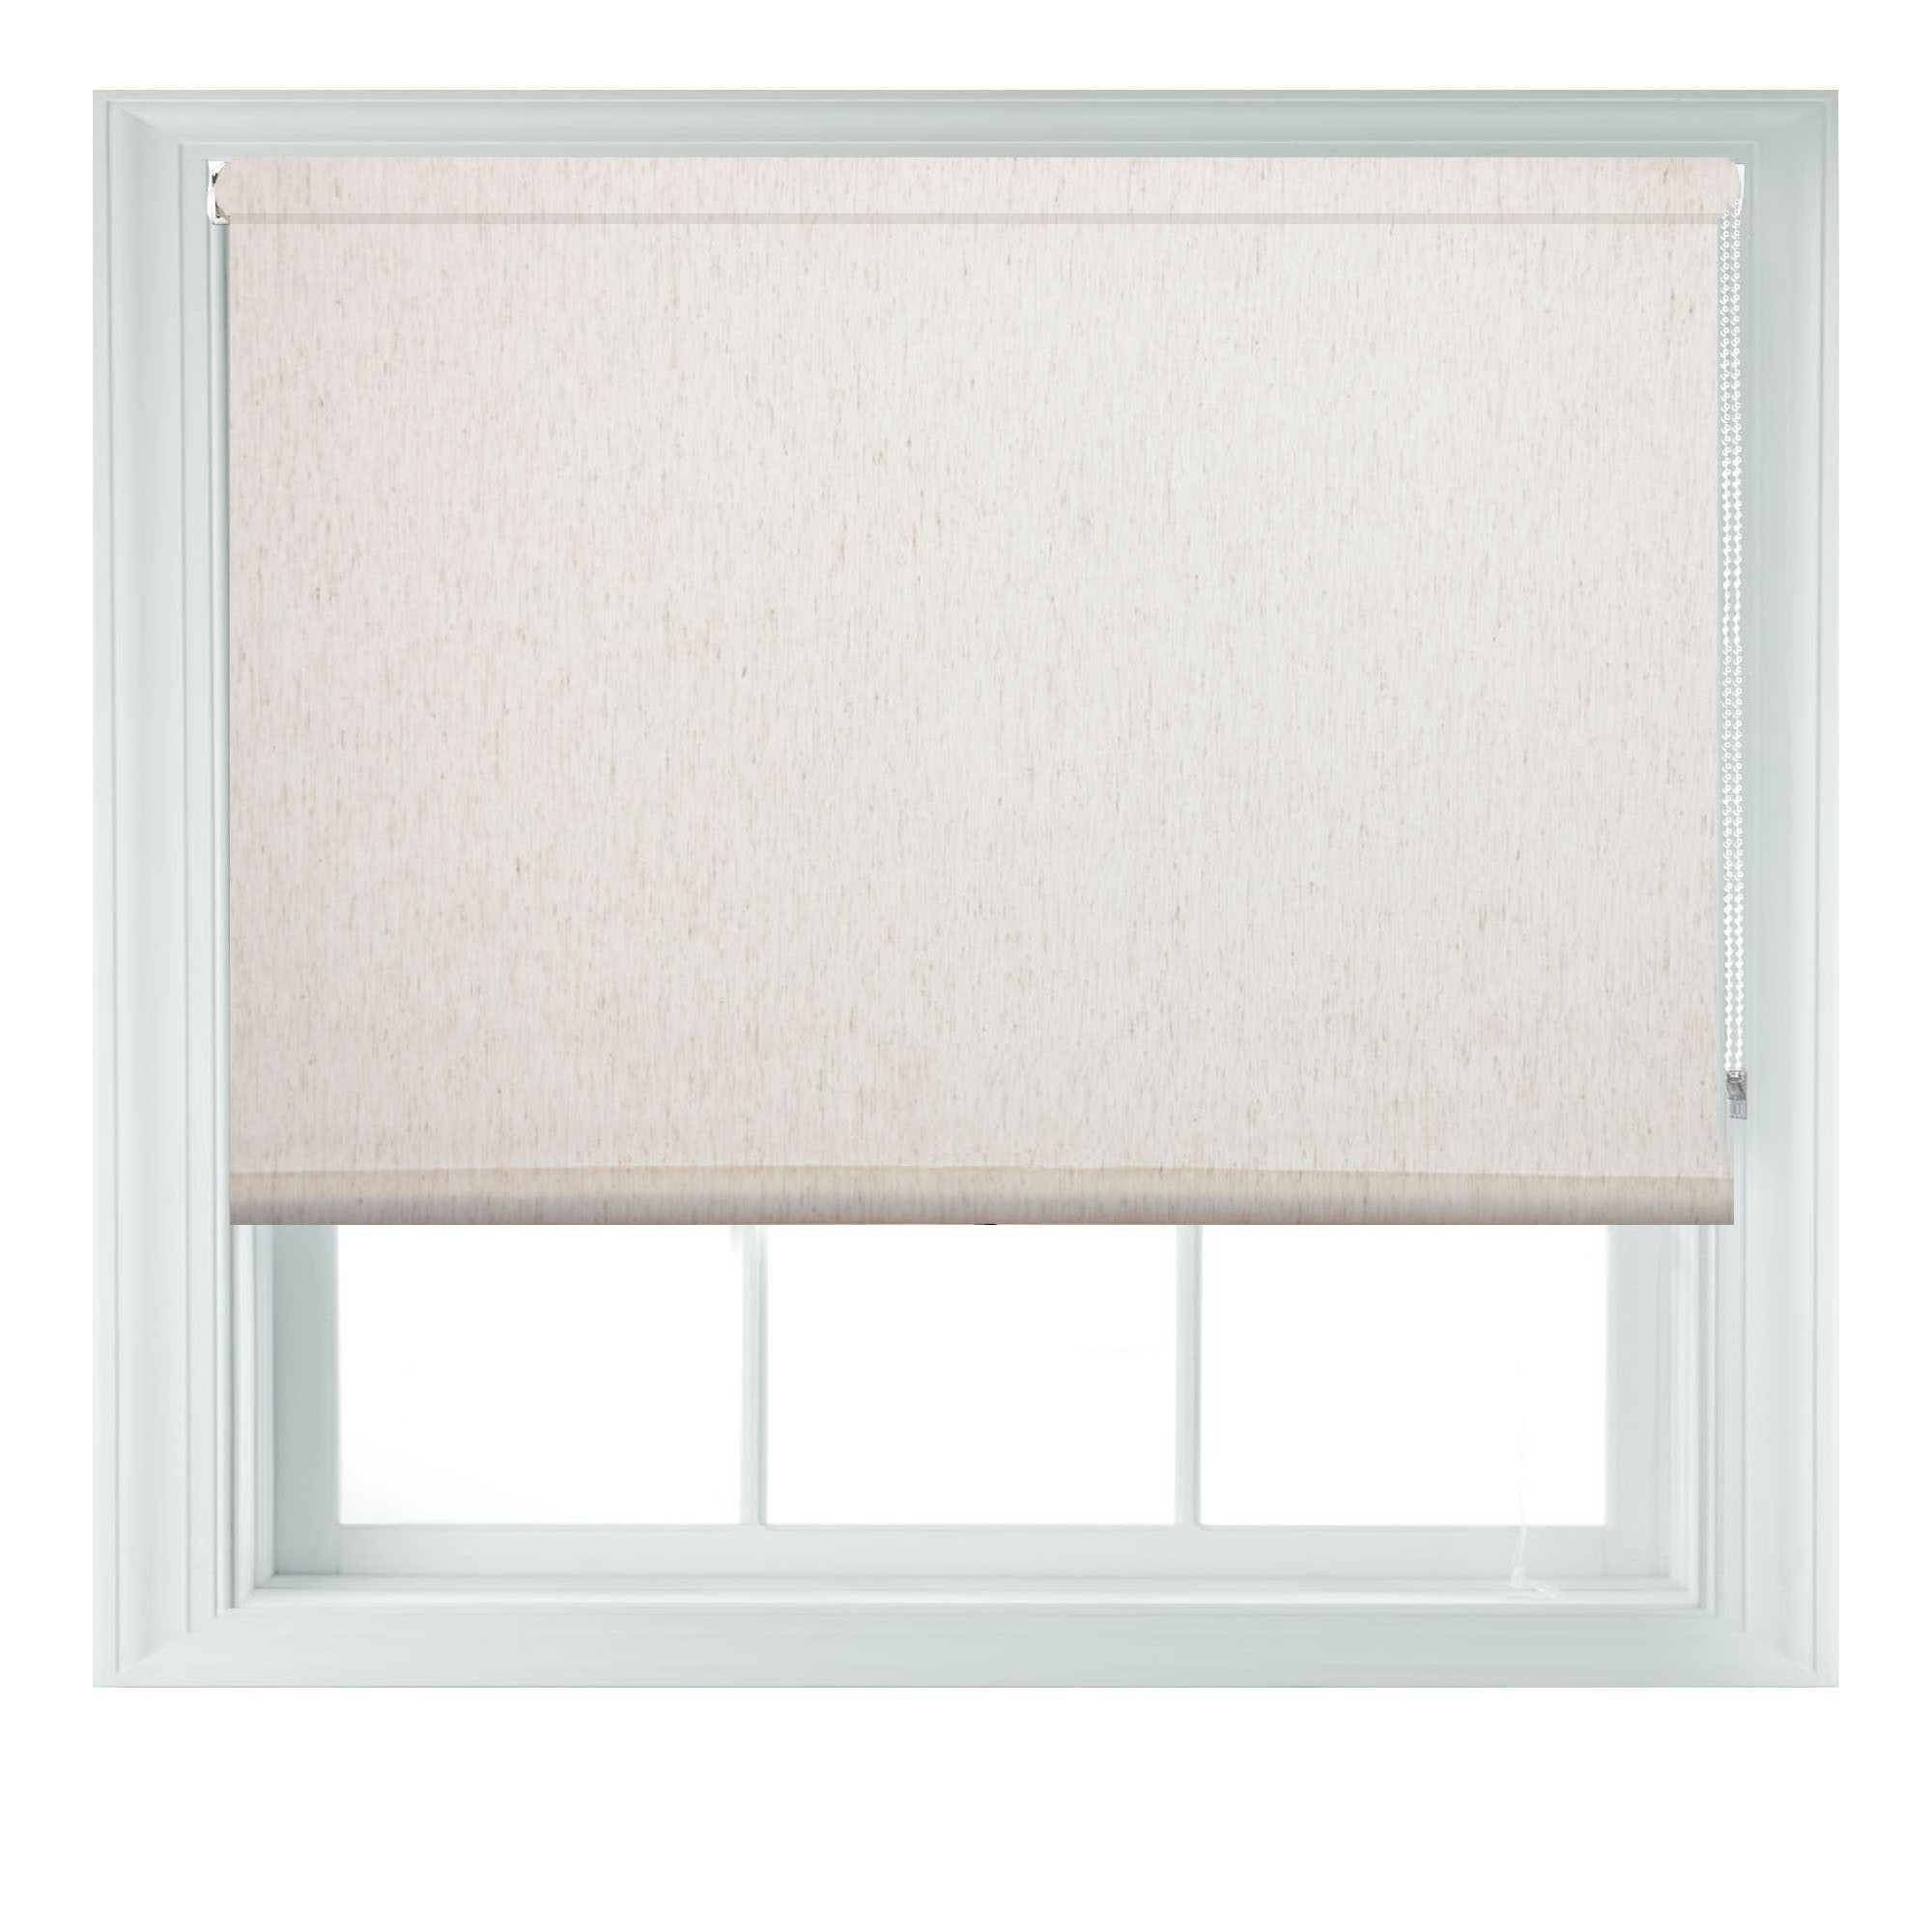 Natural Beige Linen Roller Blinds Quality Window Blind Free Cut Throughout Linen Roller Blinds (Image 8 of 15)